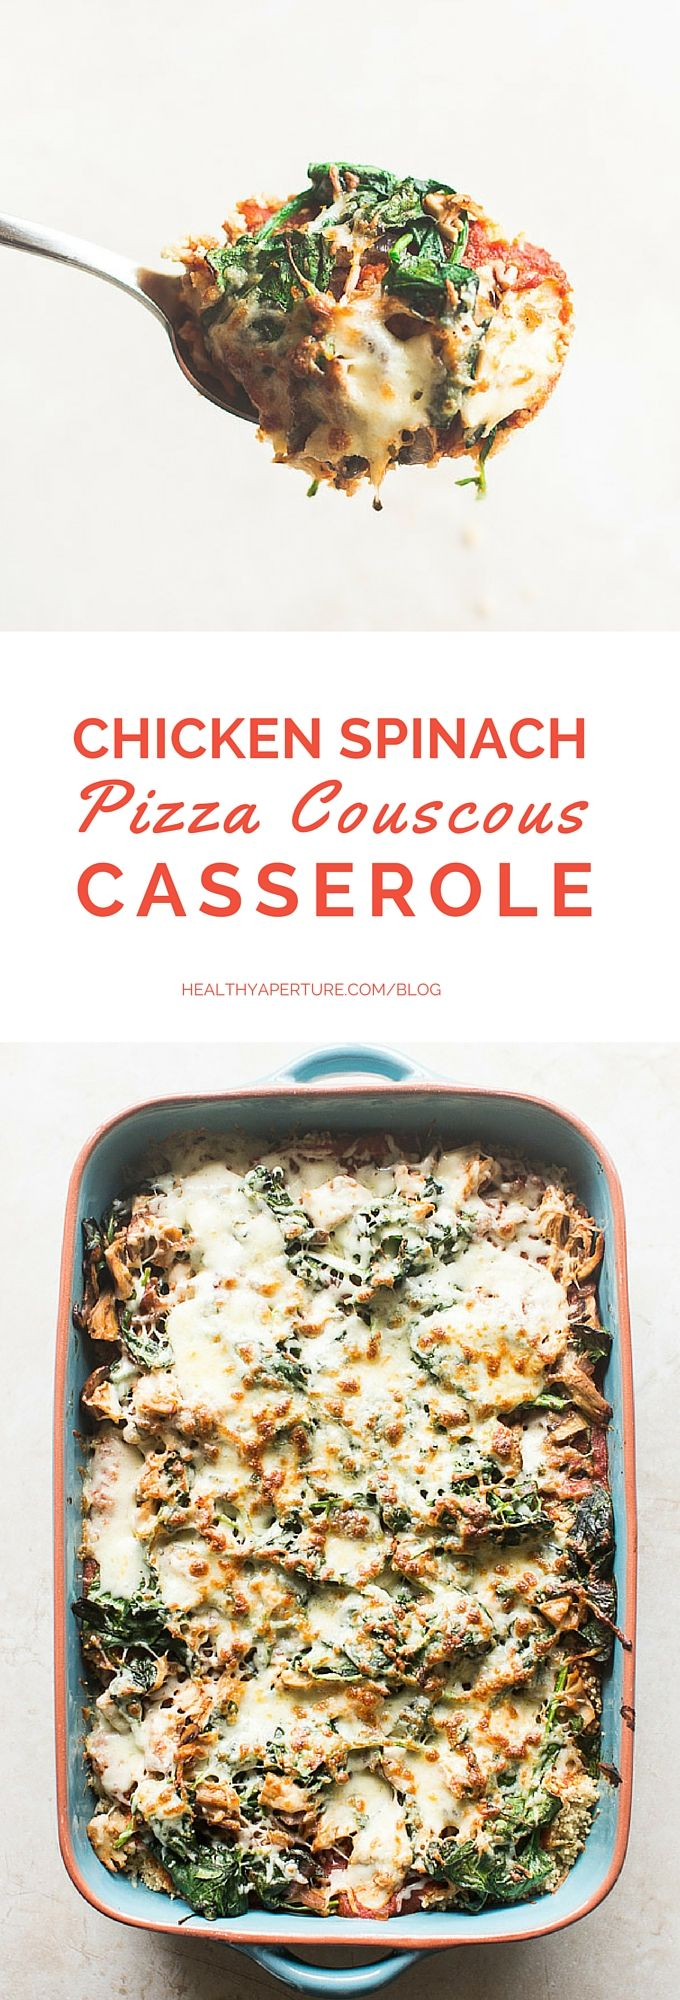 Chicken Spinach Pizza Couscous Casserole is the perfect make ahead meal with all the flavors of pizza in a casserole!